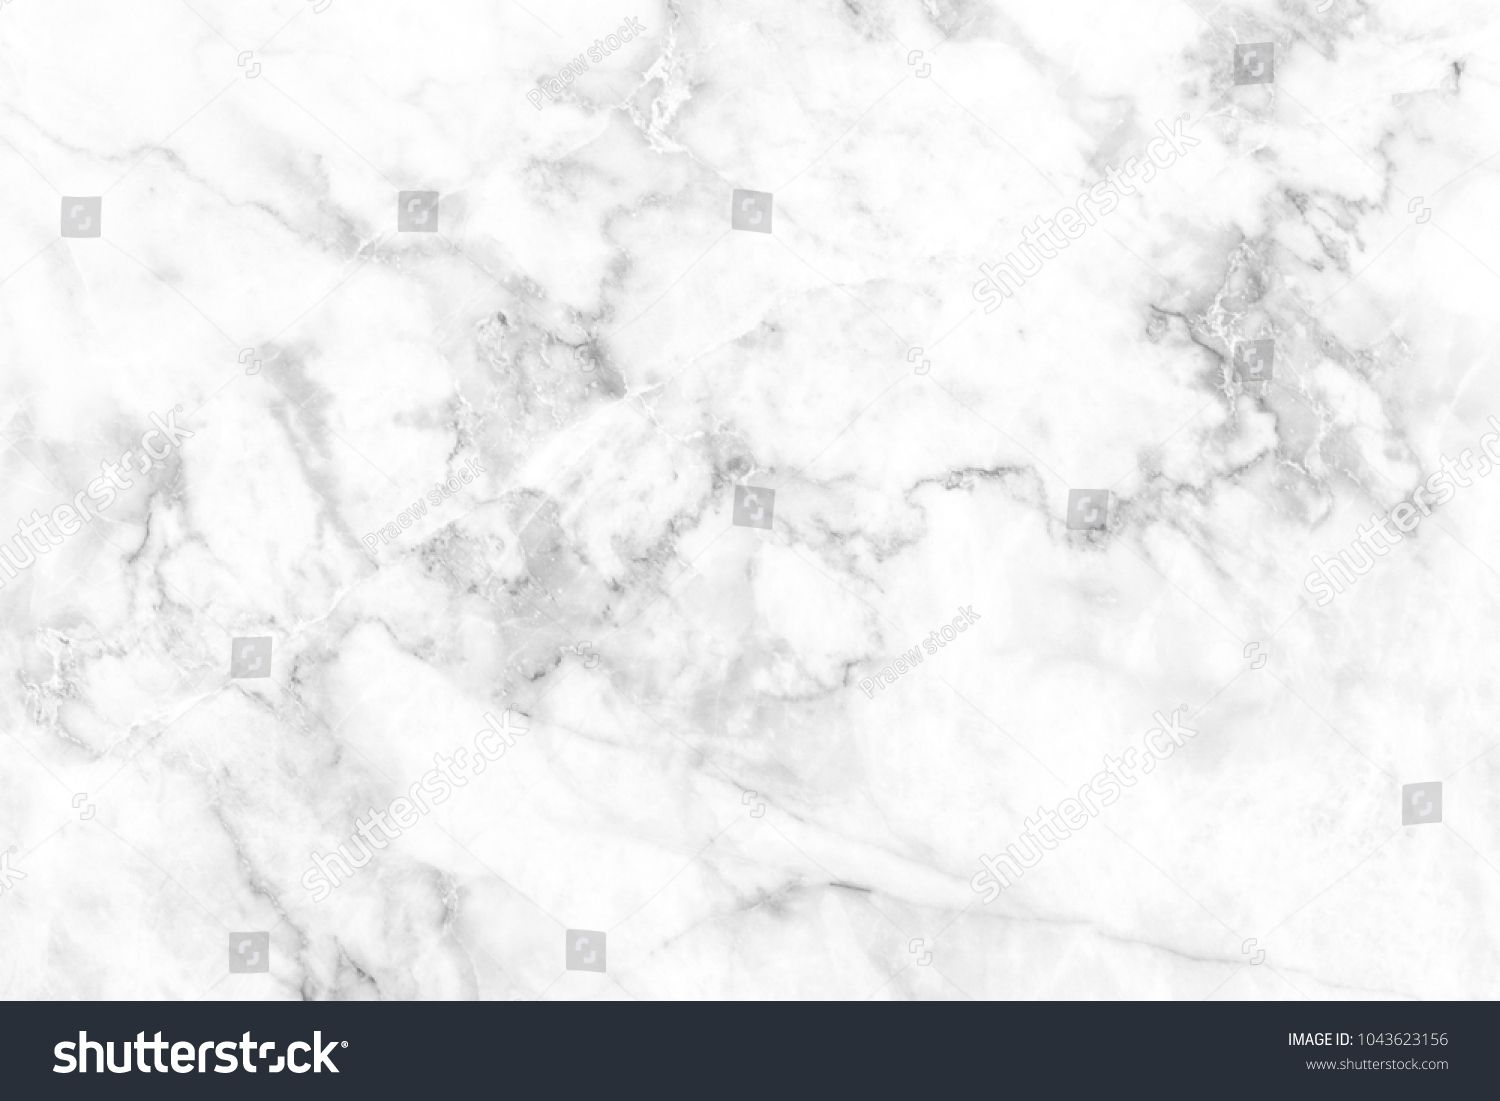 Abstract White Natural Marble Texture Background High Resolution Or Design Art Work White Stone Floor Pattern For B Marble Texture Textured Background Abstract